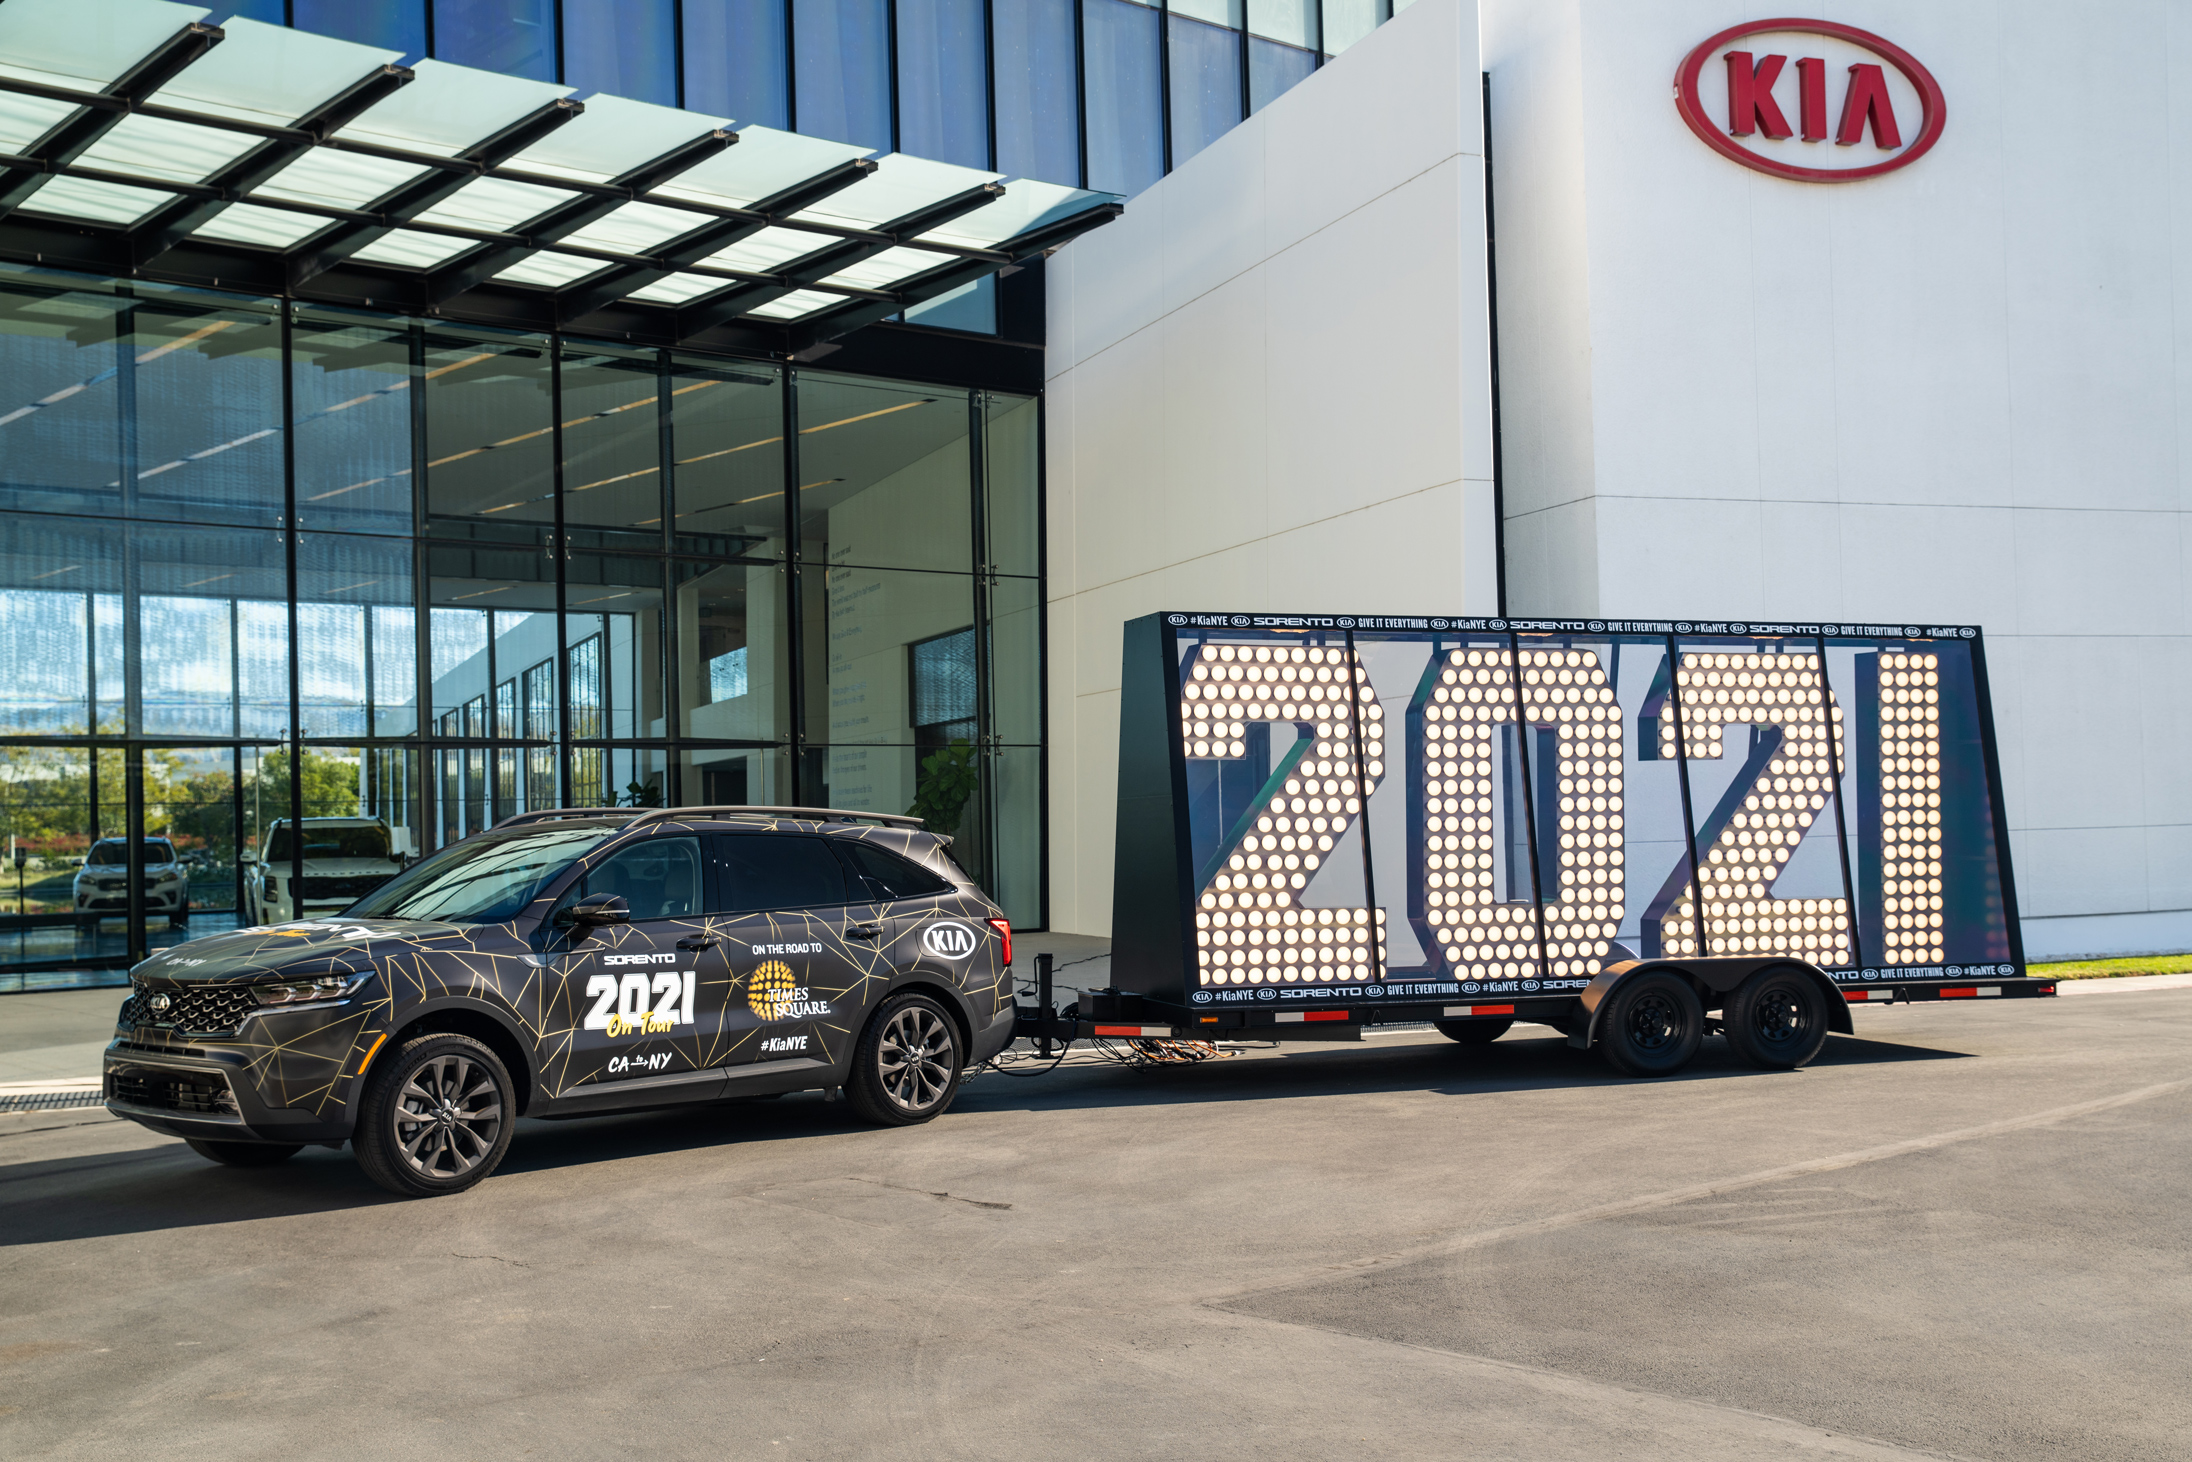 Kia to haul Times Square's '2021' across the country as part of New Year's Eve marketing